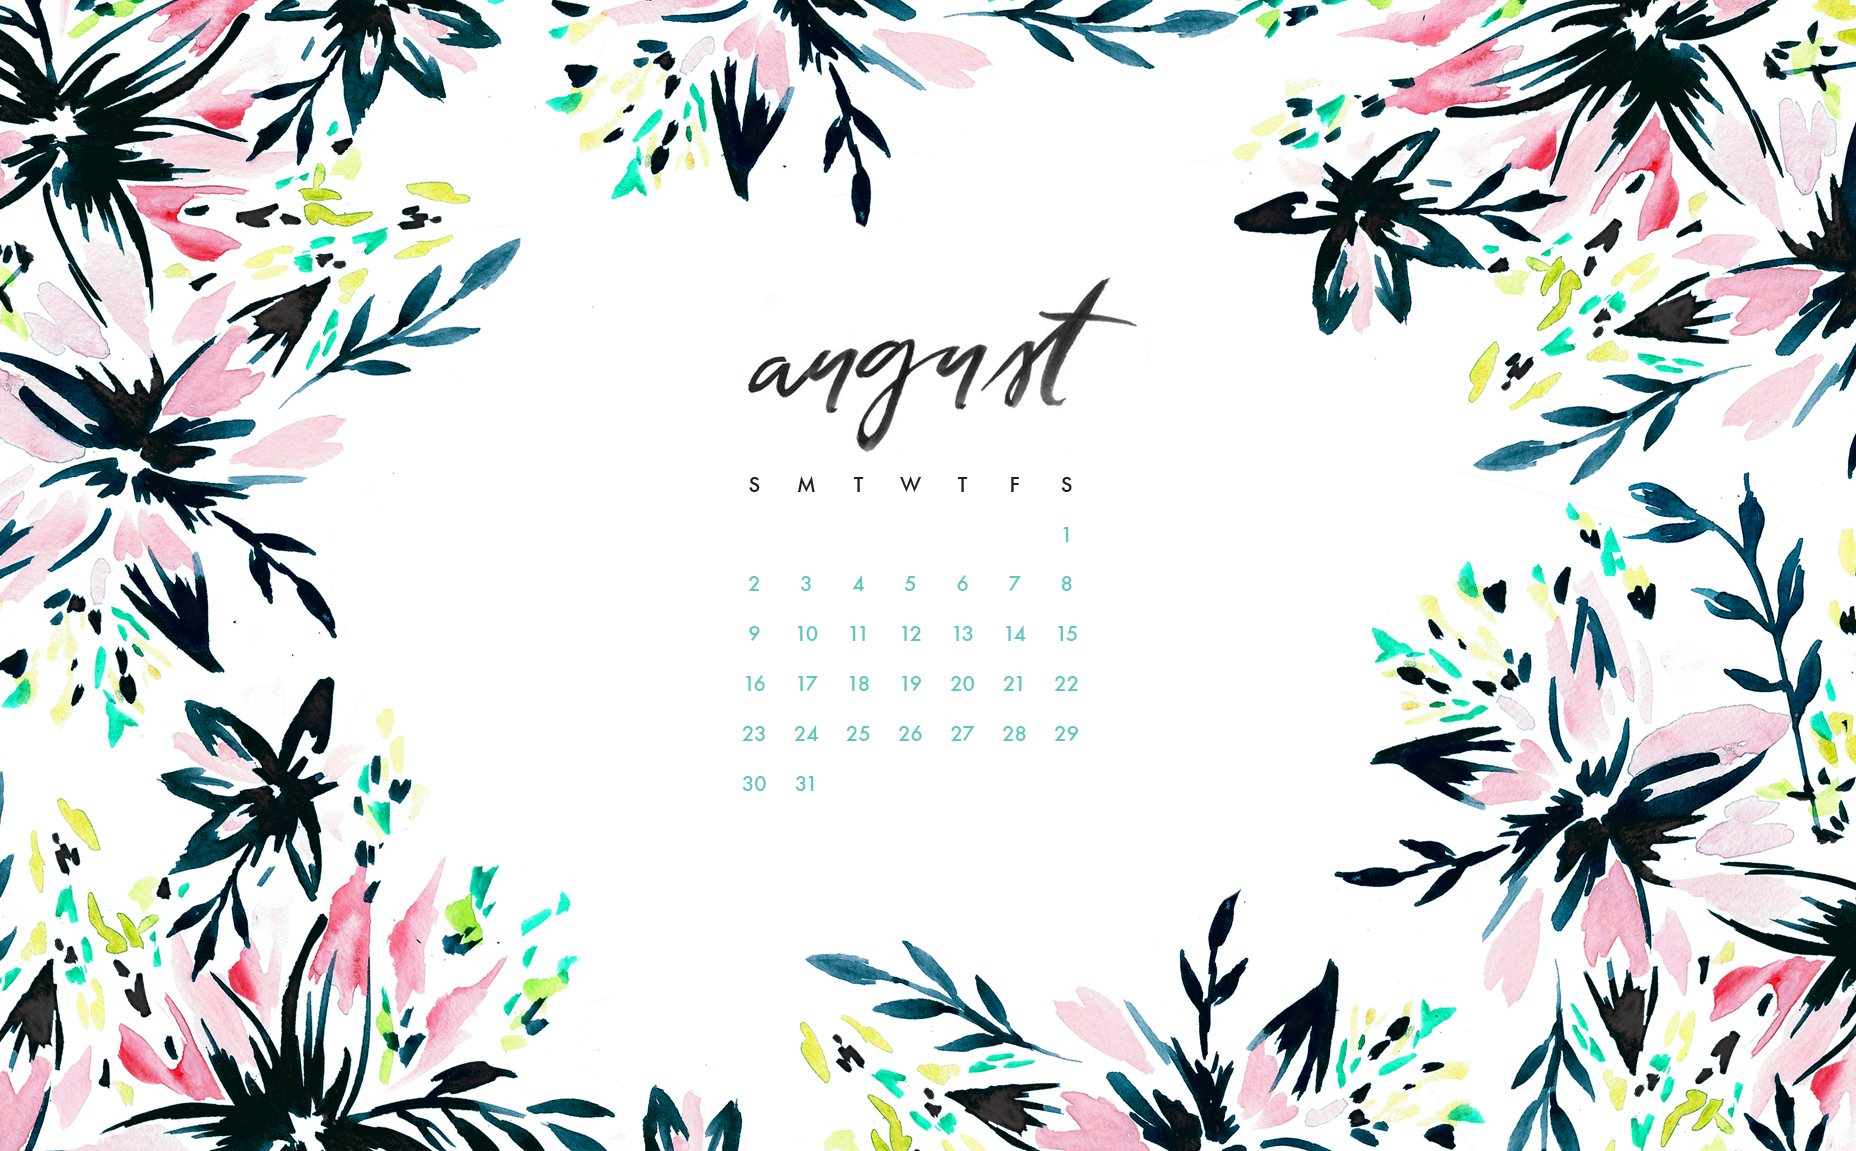 md-desktop-tropical-floral-1-calendar